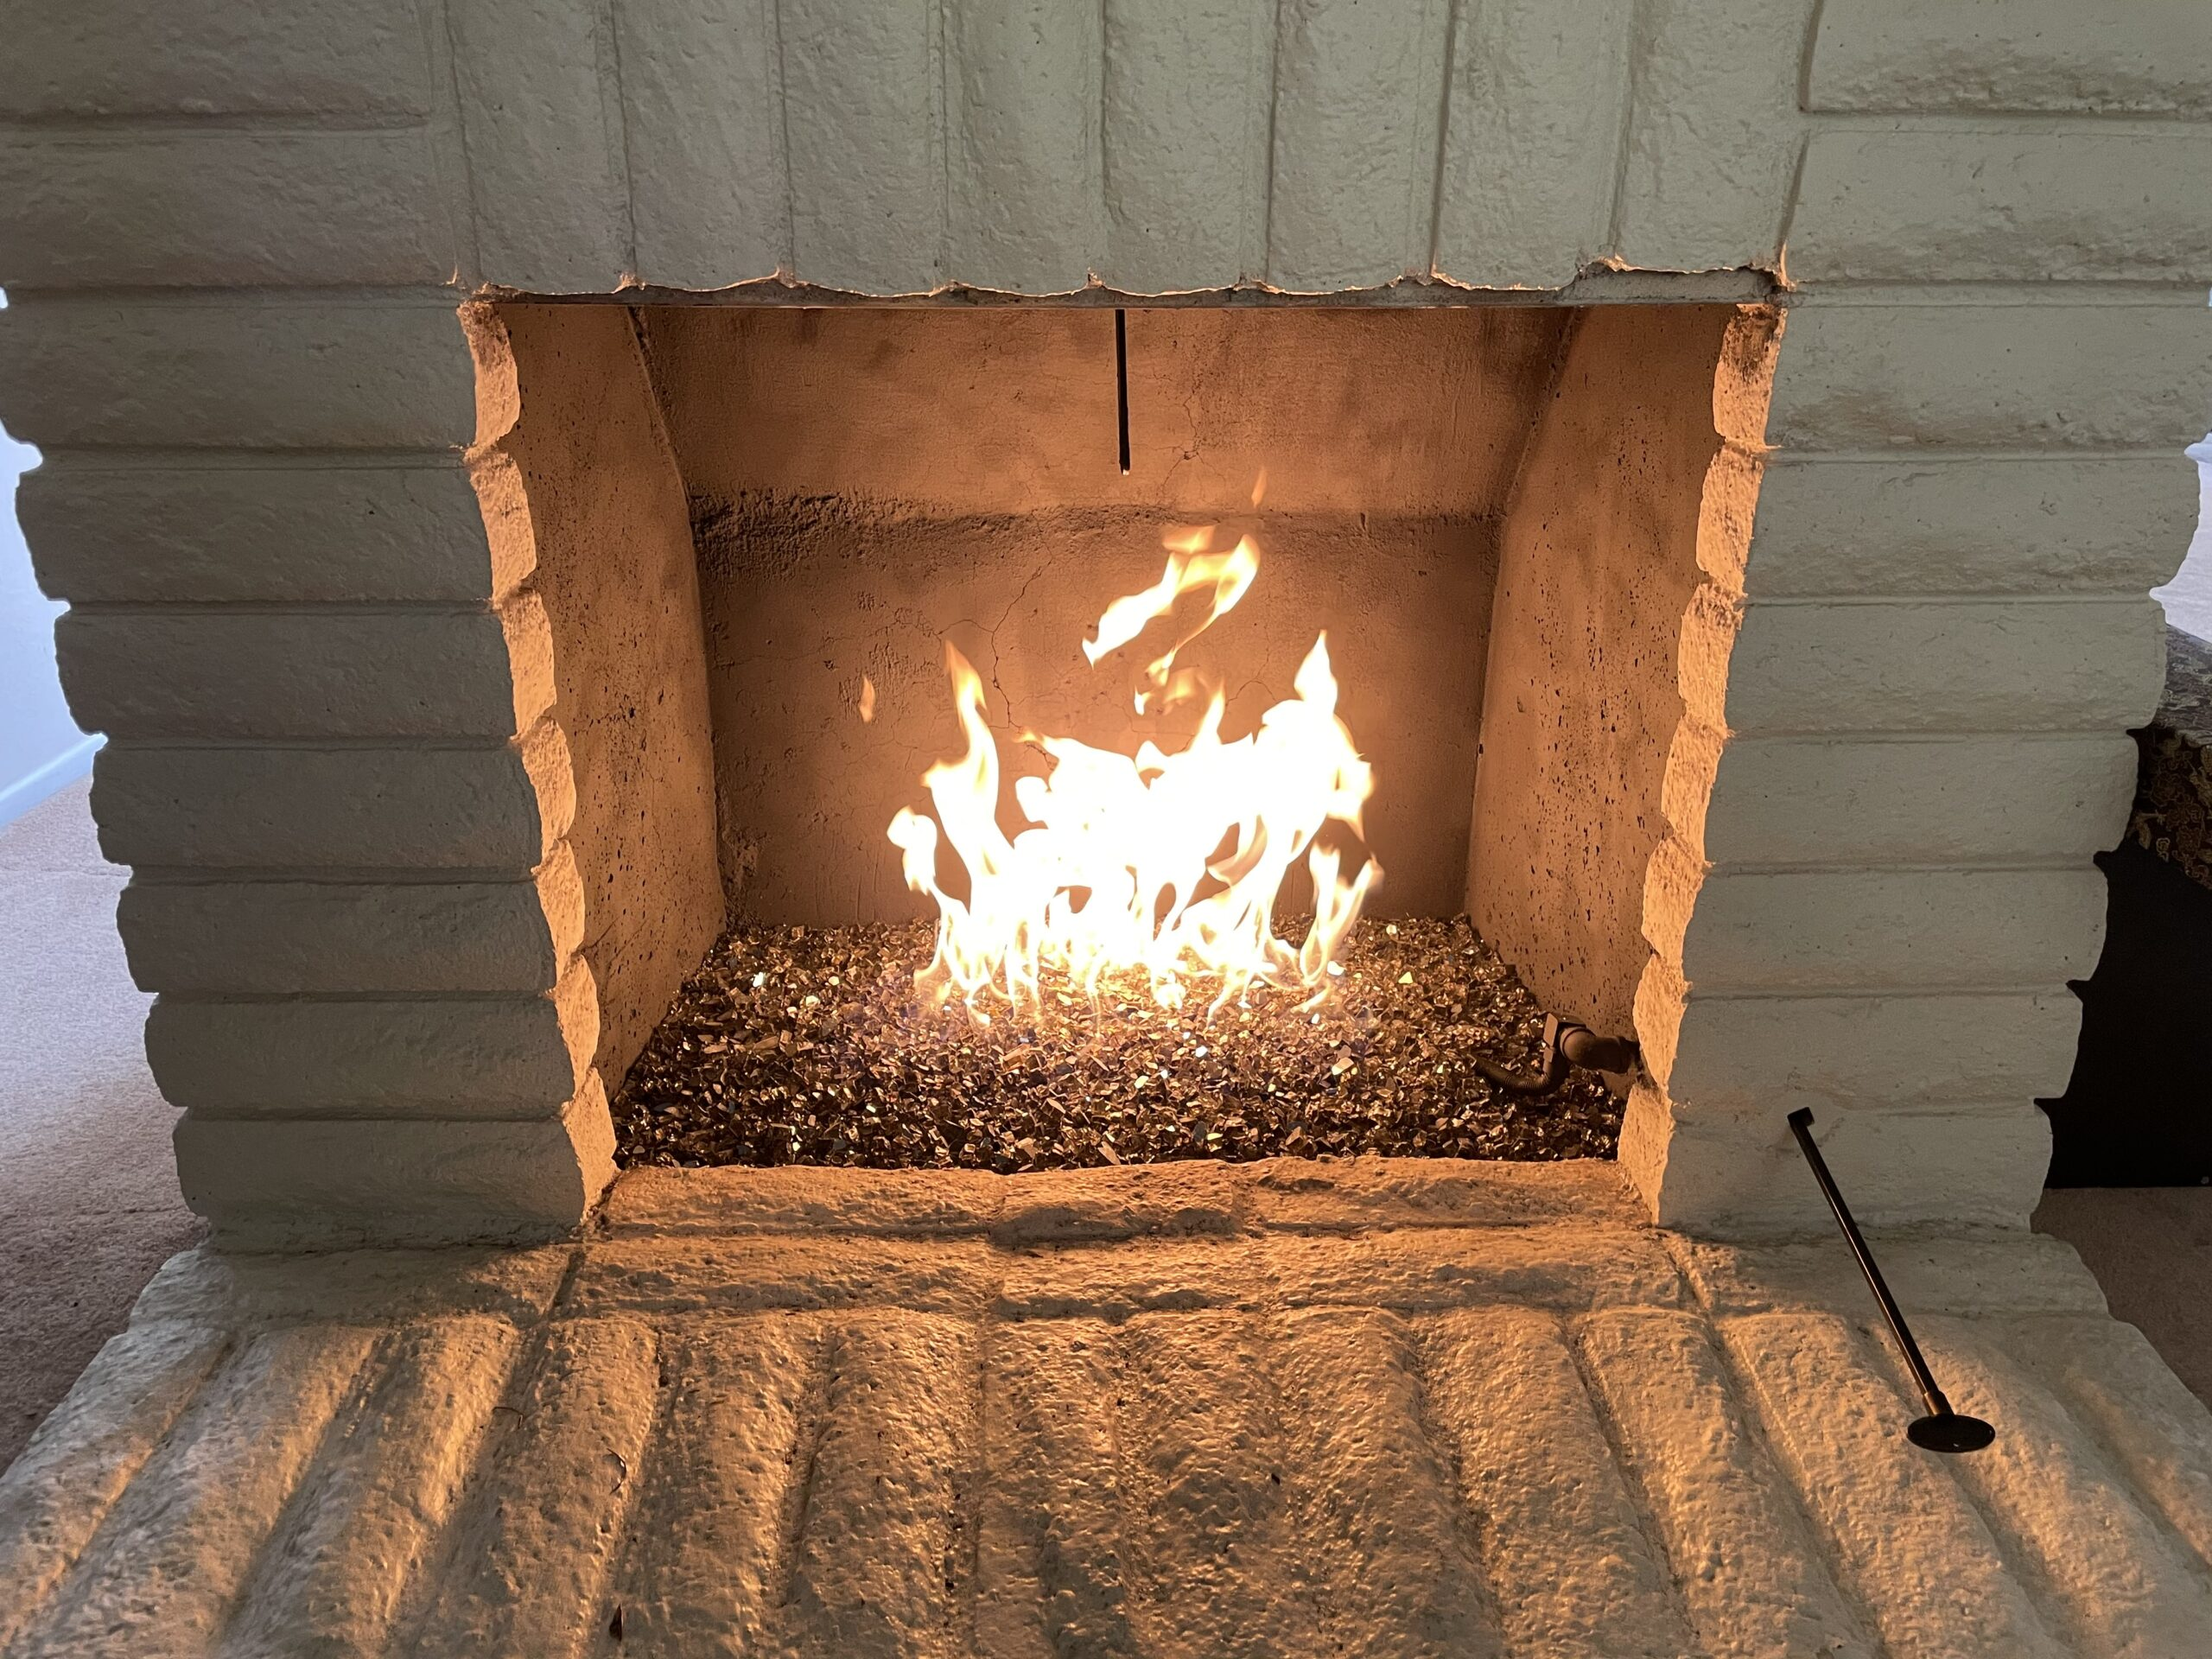 Glass Fire Rocks installed by A-1 Duct Cleaning & Chimney Sweep in Orange County, CA